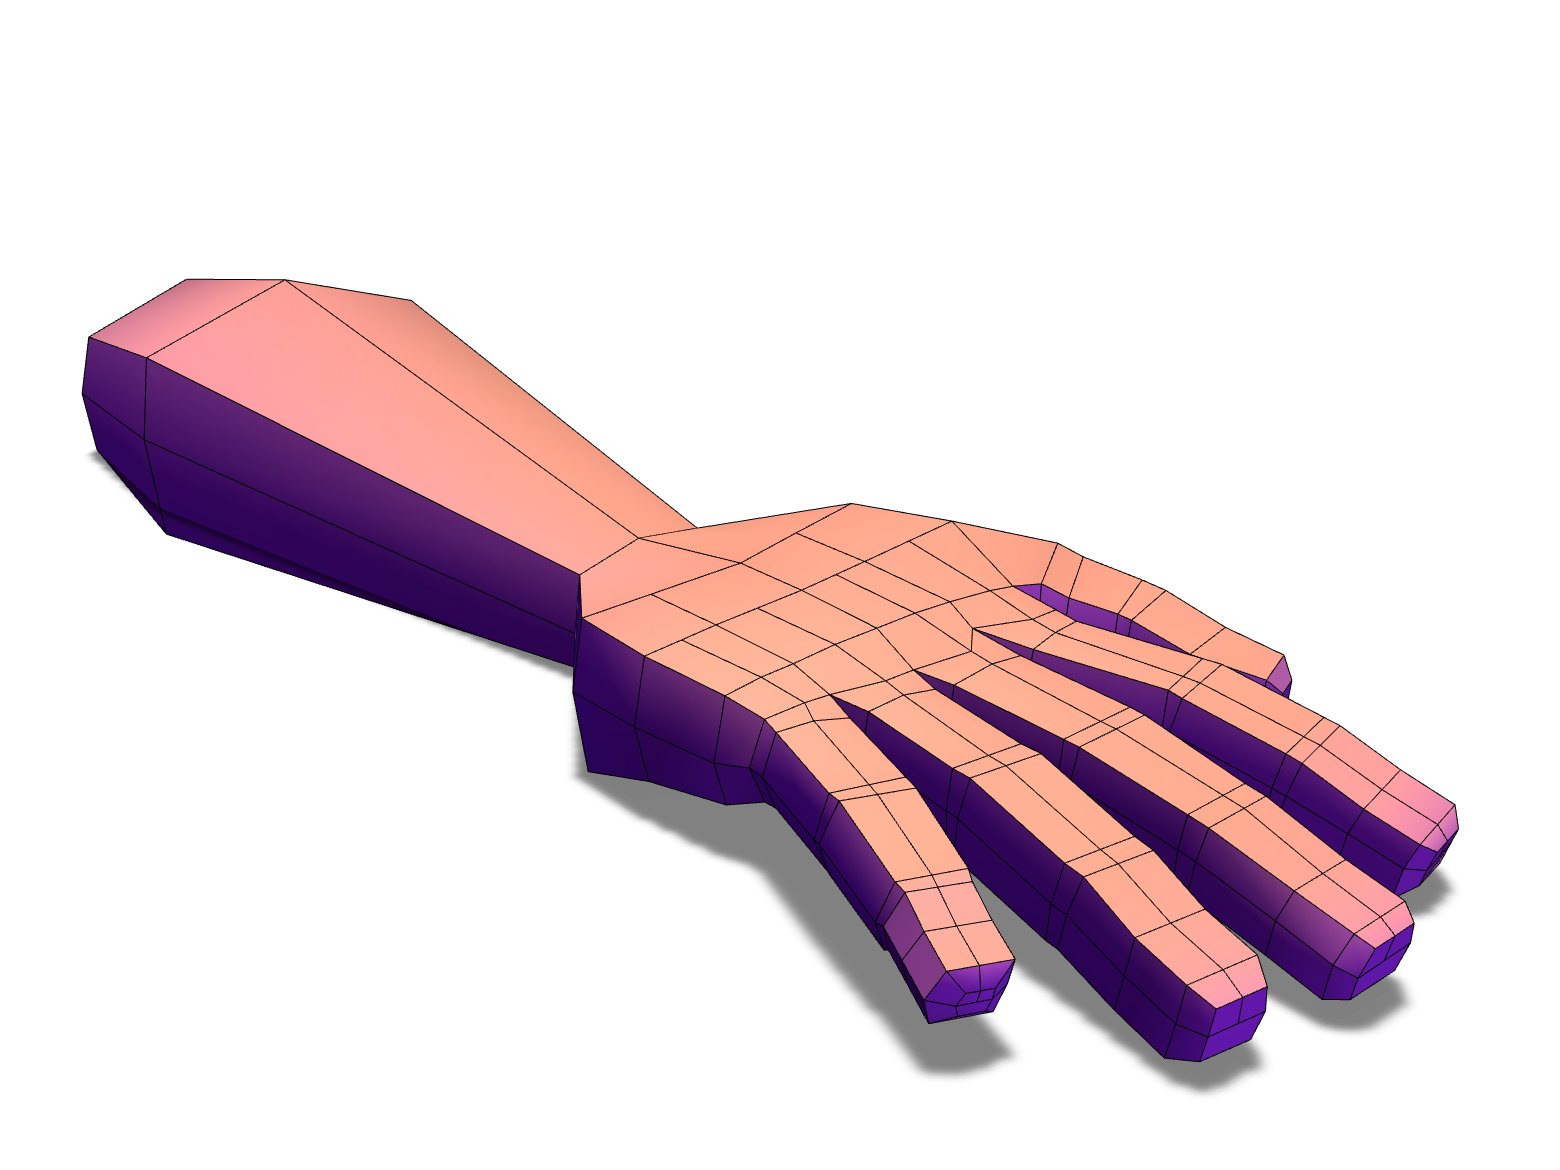 Human arm - 3D design by phillipsalf on Dec 27, 2017